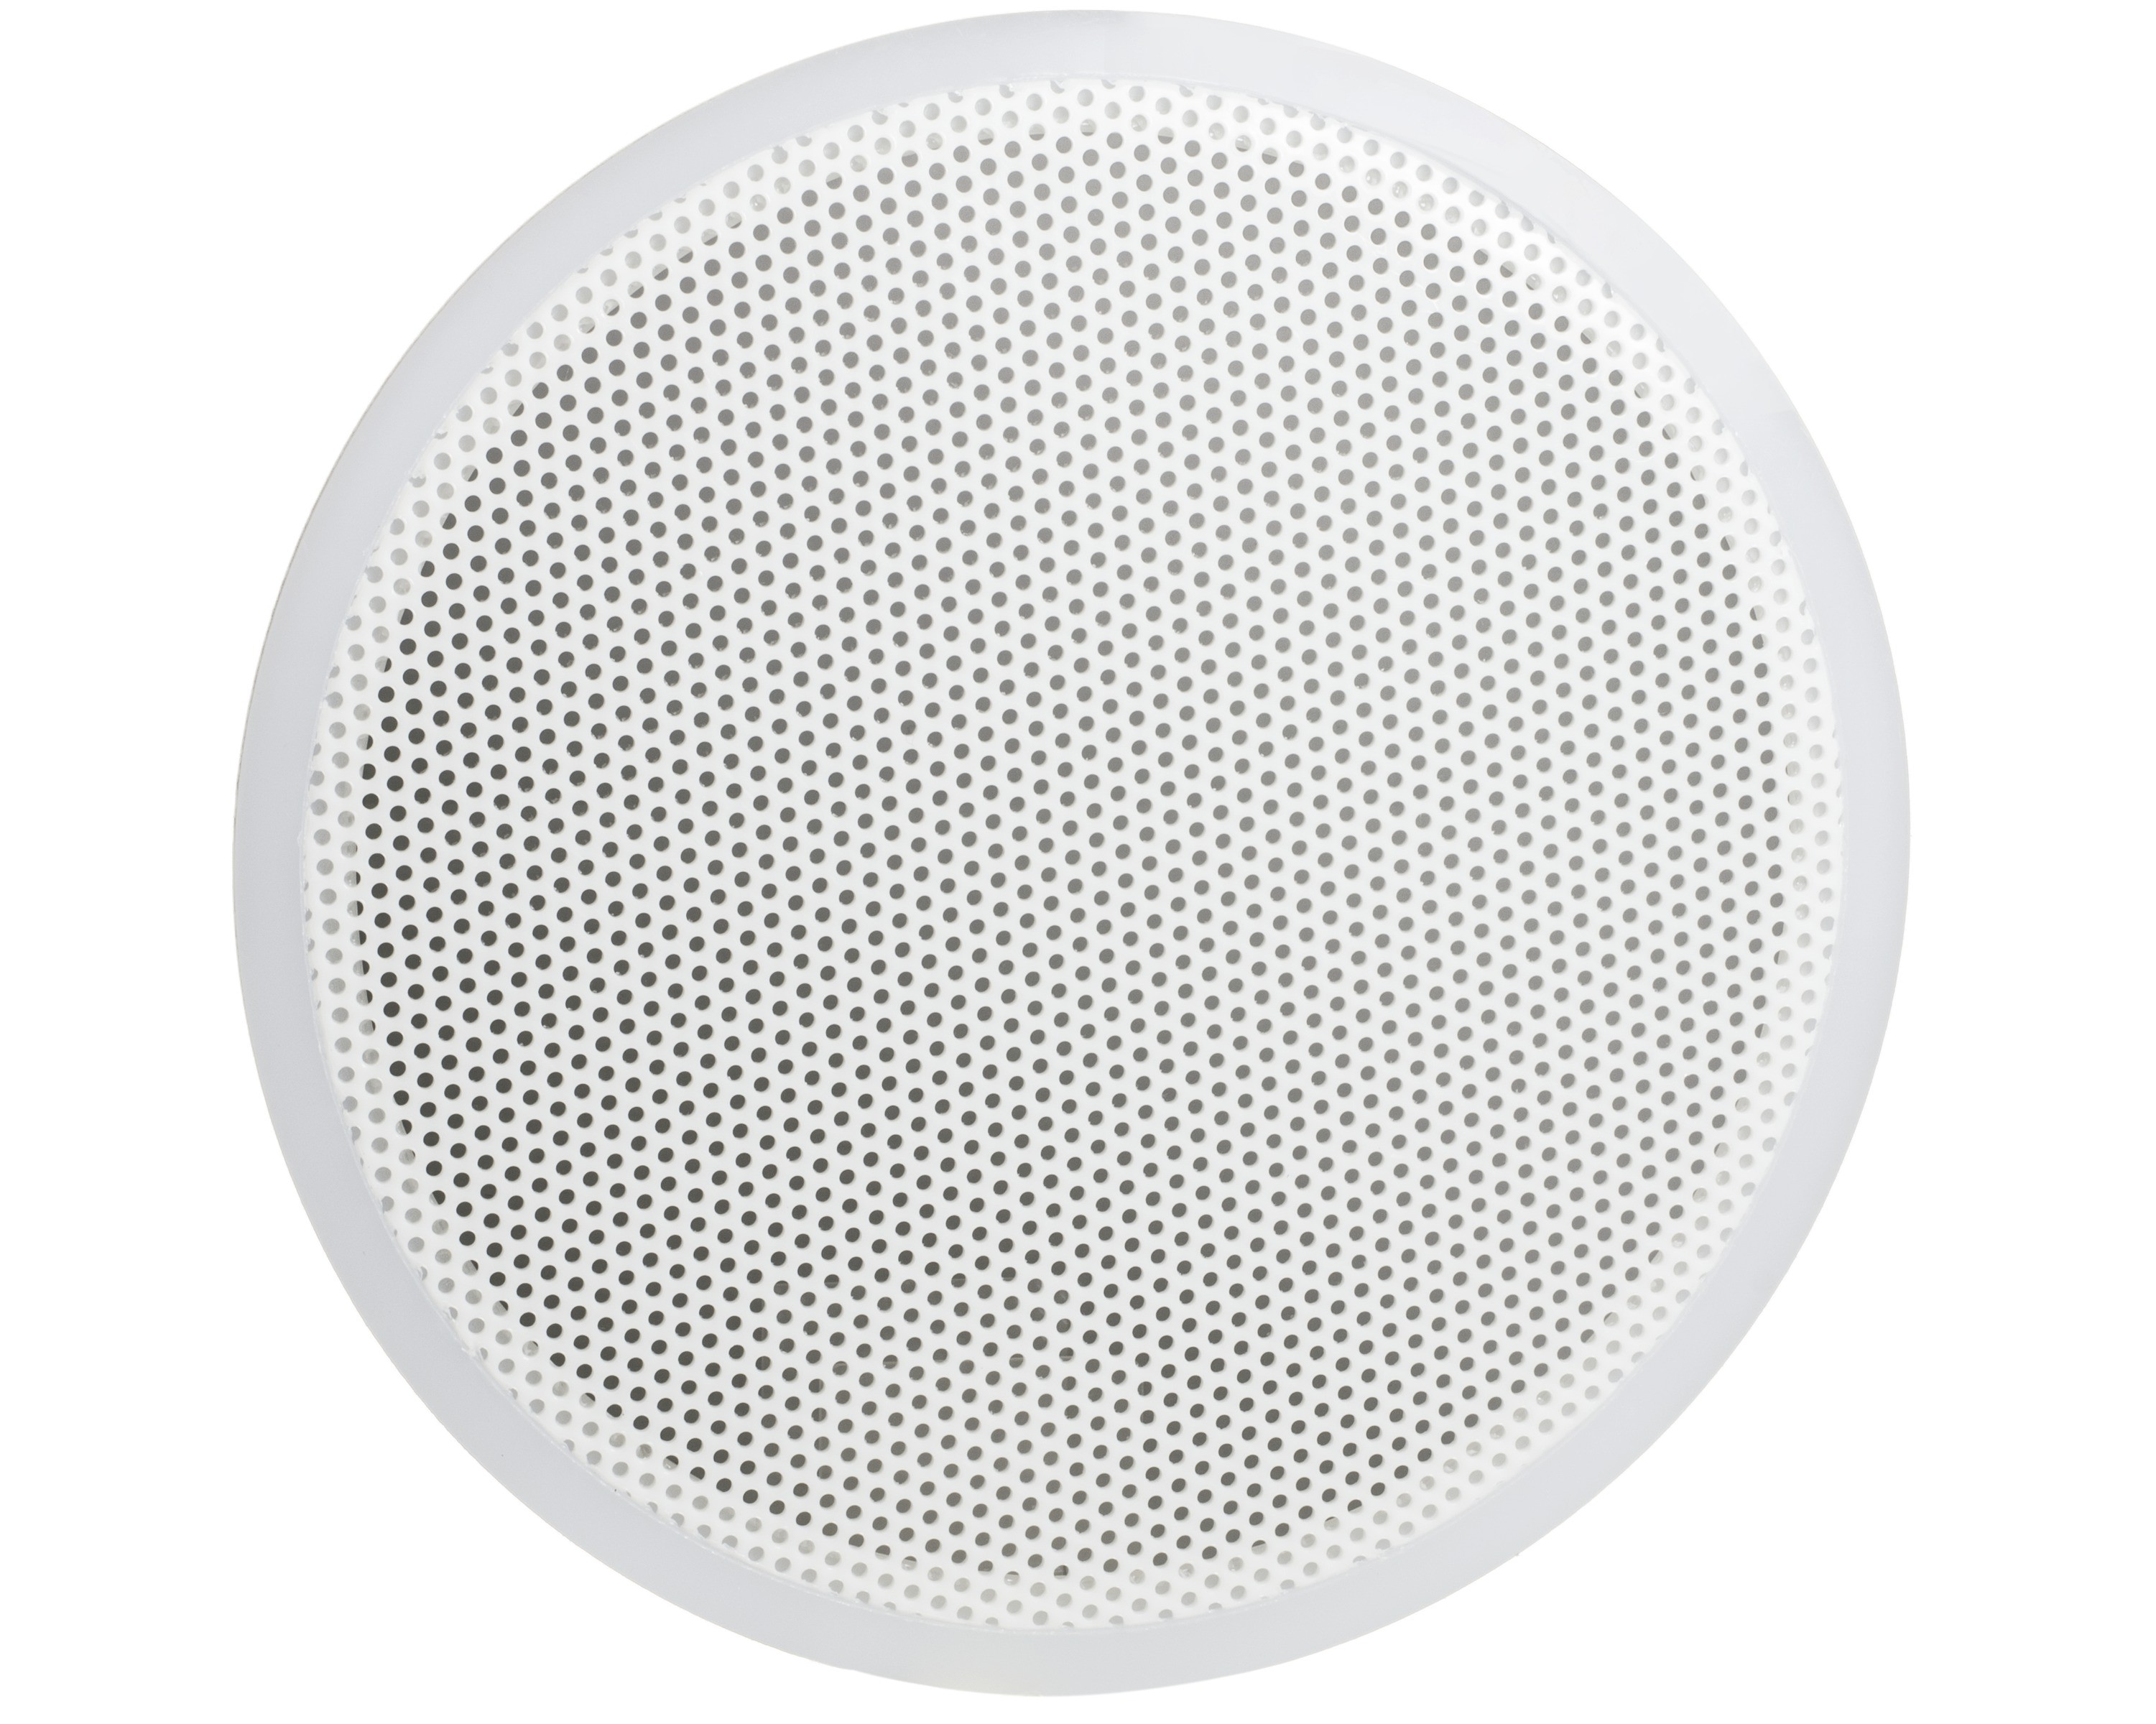 Bel-Art Polyethylene Perforated Filter Plate; for 18 in. I.D. Buchner Funnels